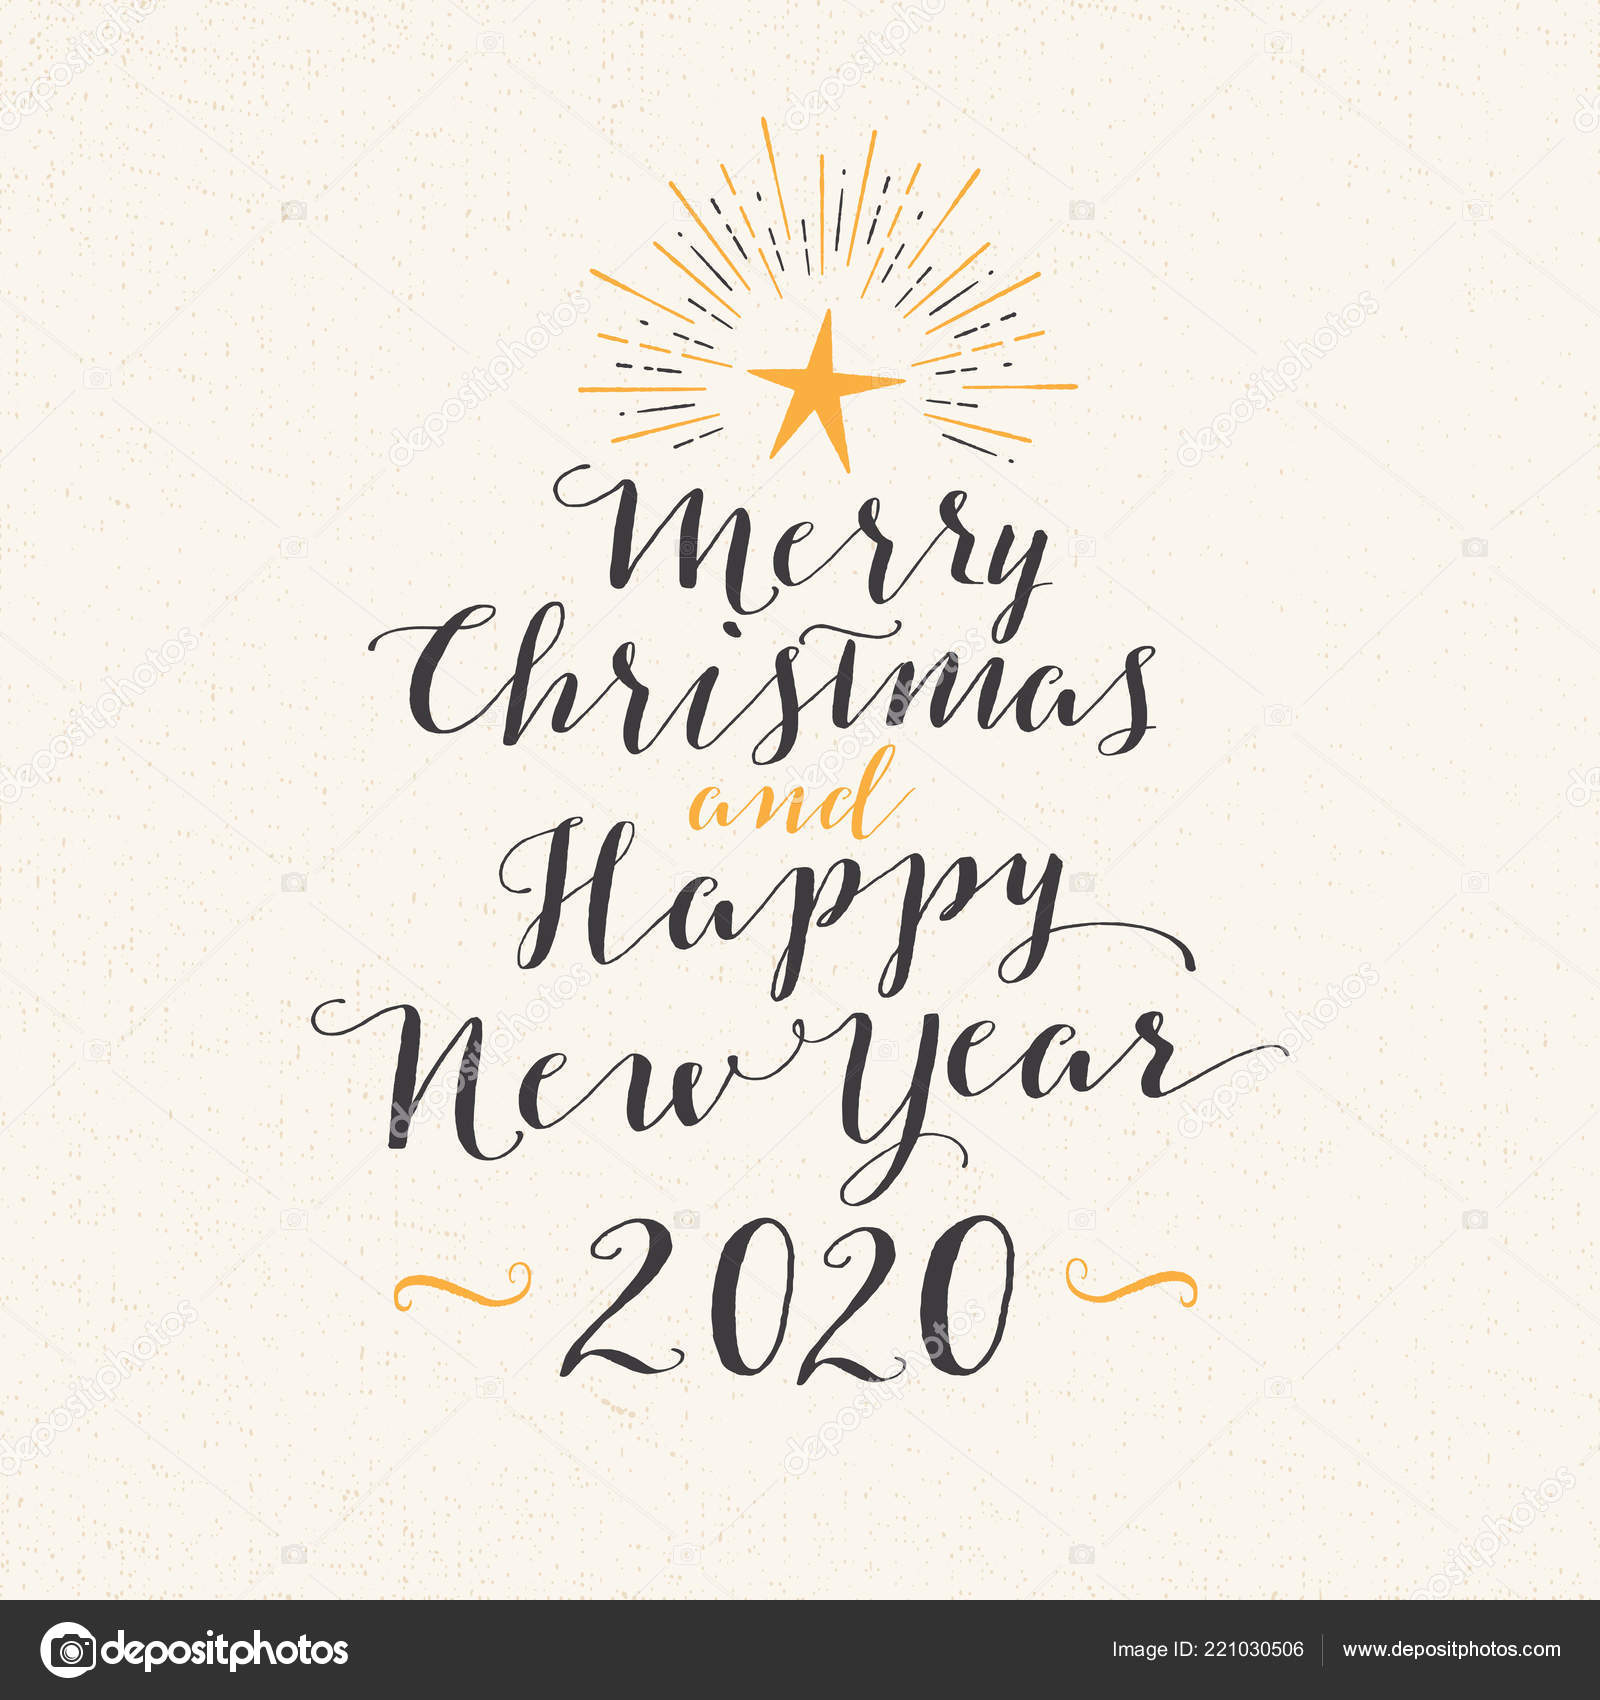 Merry Christmas And Happy New Year 2020 Writing Handmade Style Greeting Card Merry Christmas Happy New Year 2020